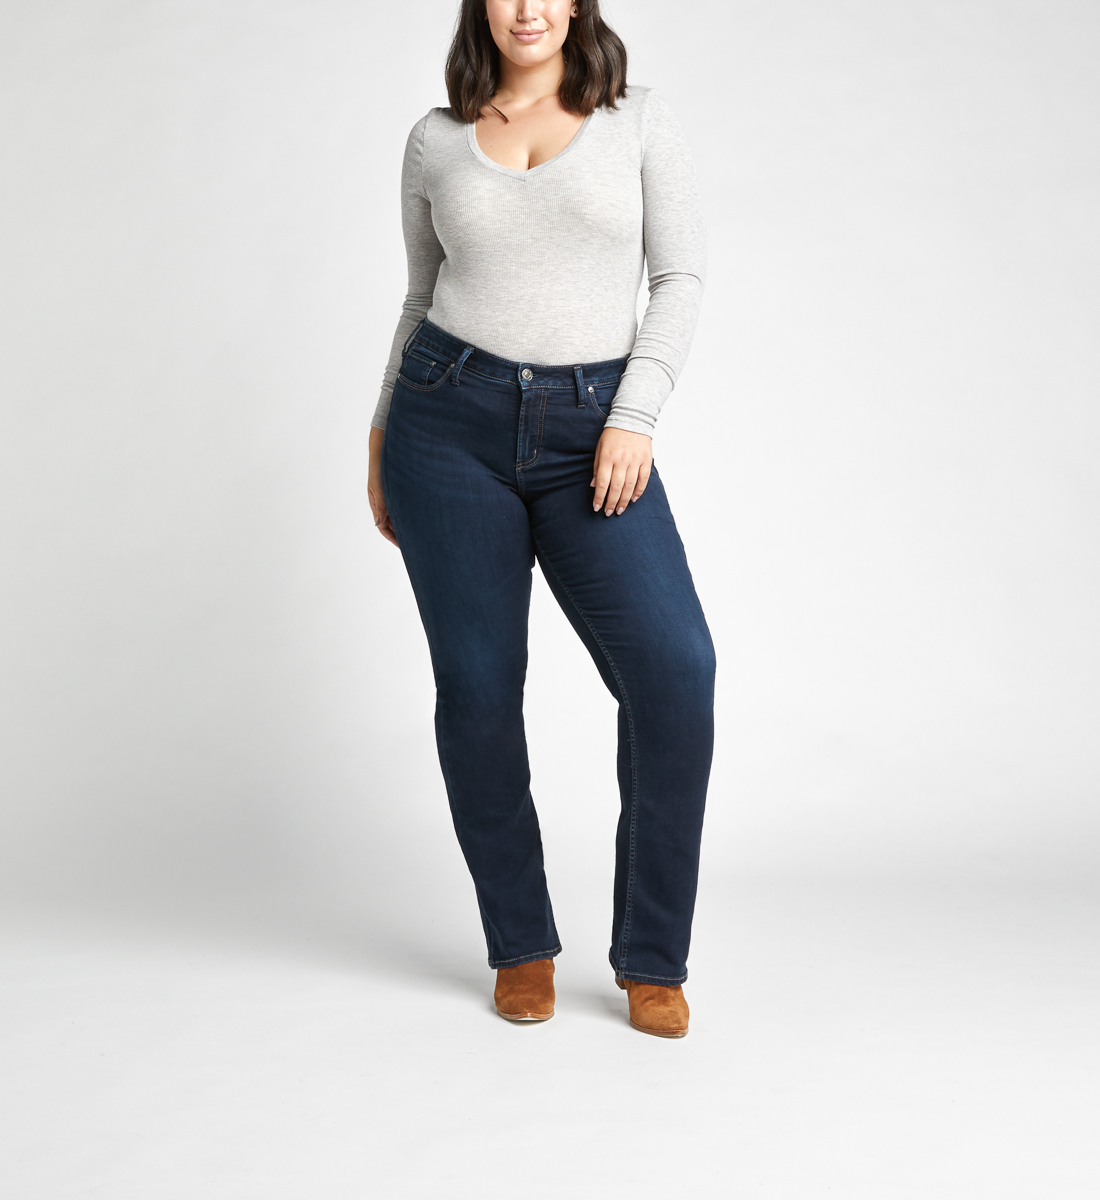 Avery High Rise Slim Bootcut Jeans Plus Size,Indigo Alt Image 1